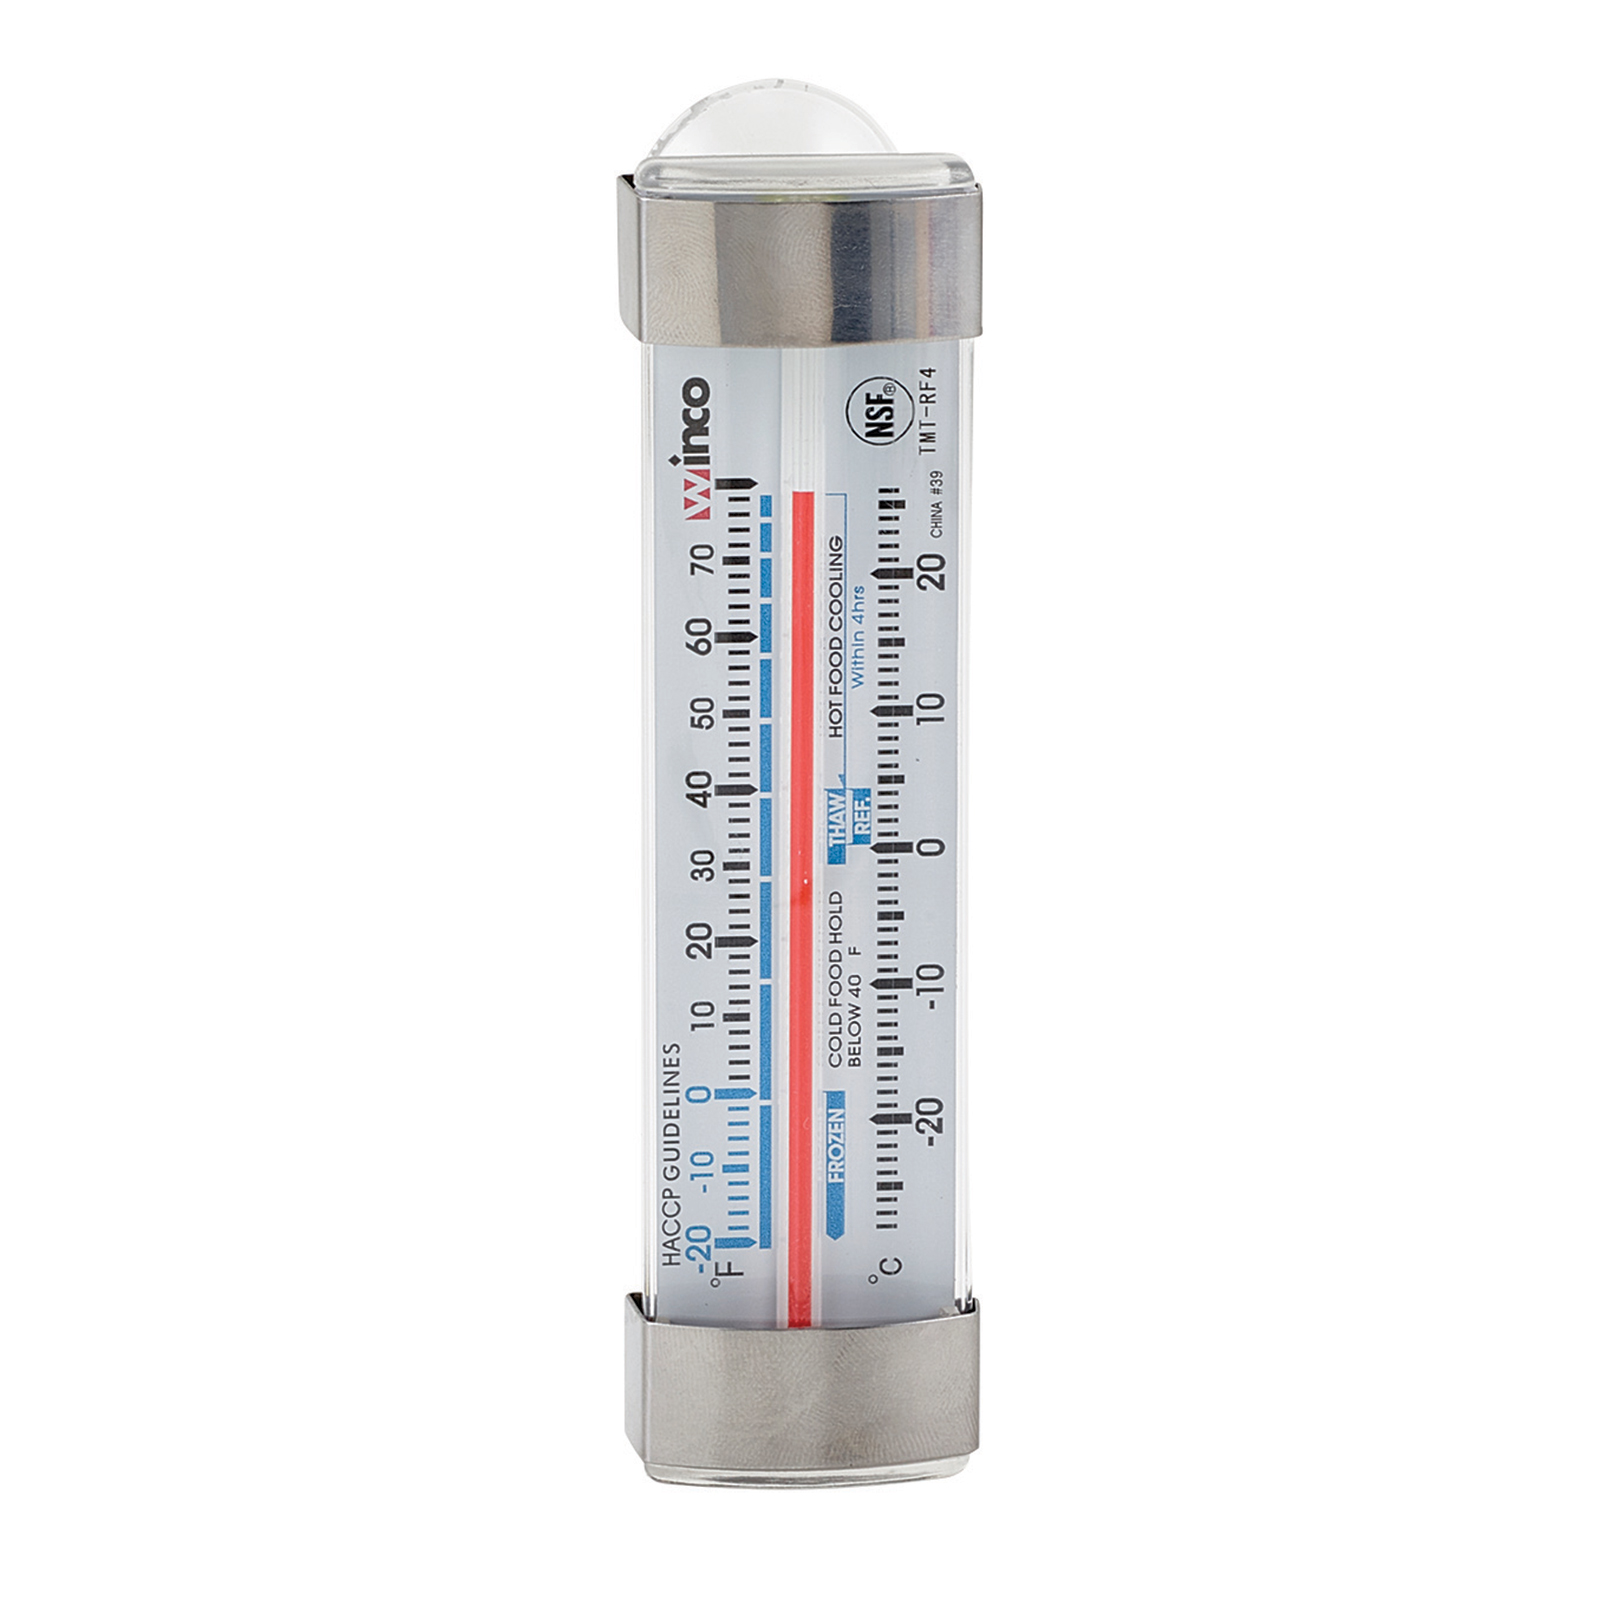 Winco TMT-RF4 thermometer, refrig freezer